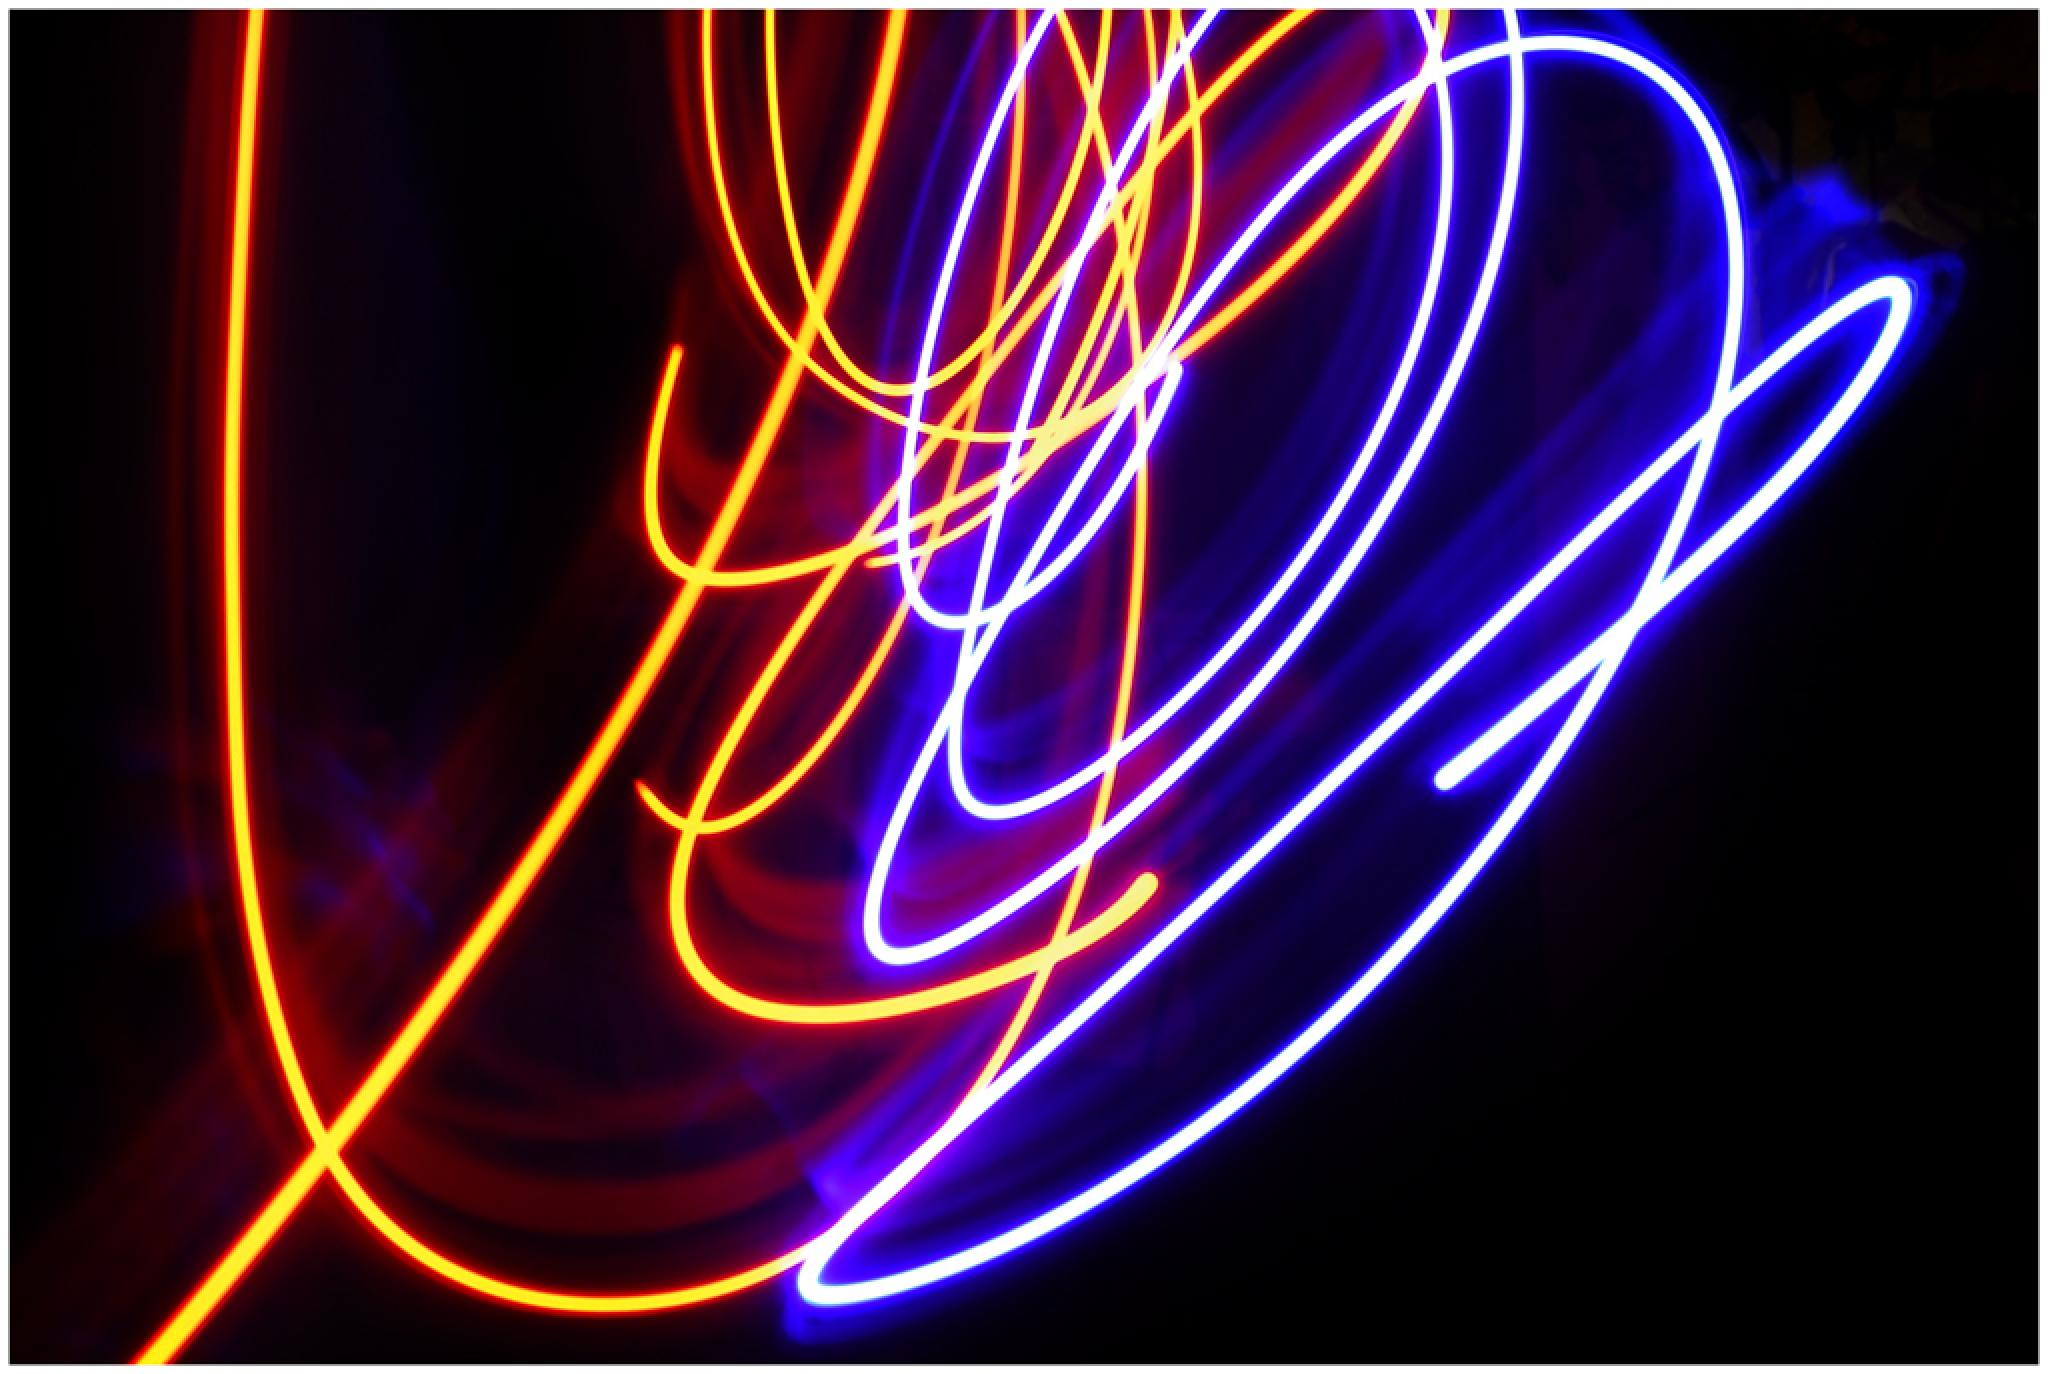 Painting with light by Bertie Price